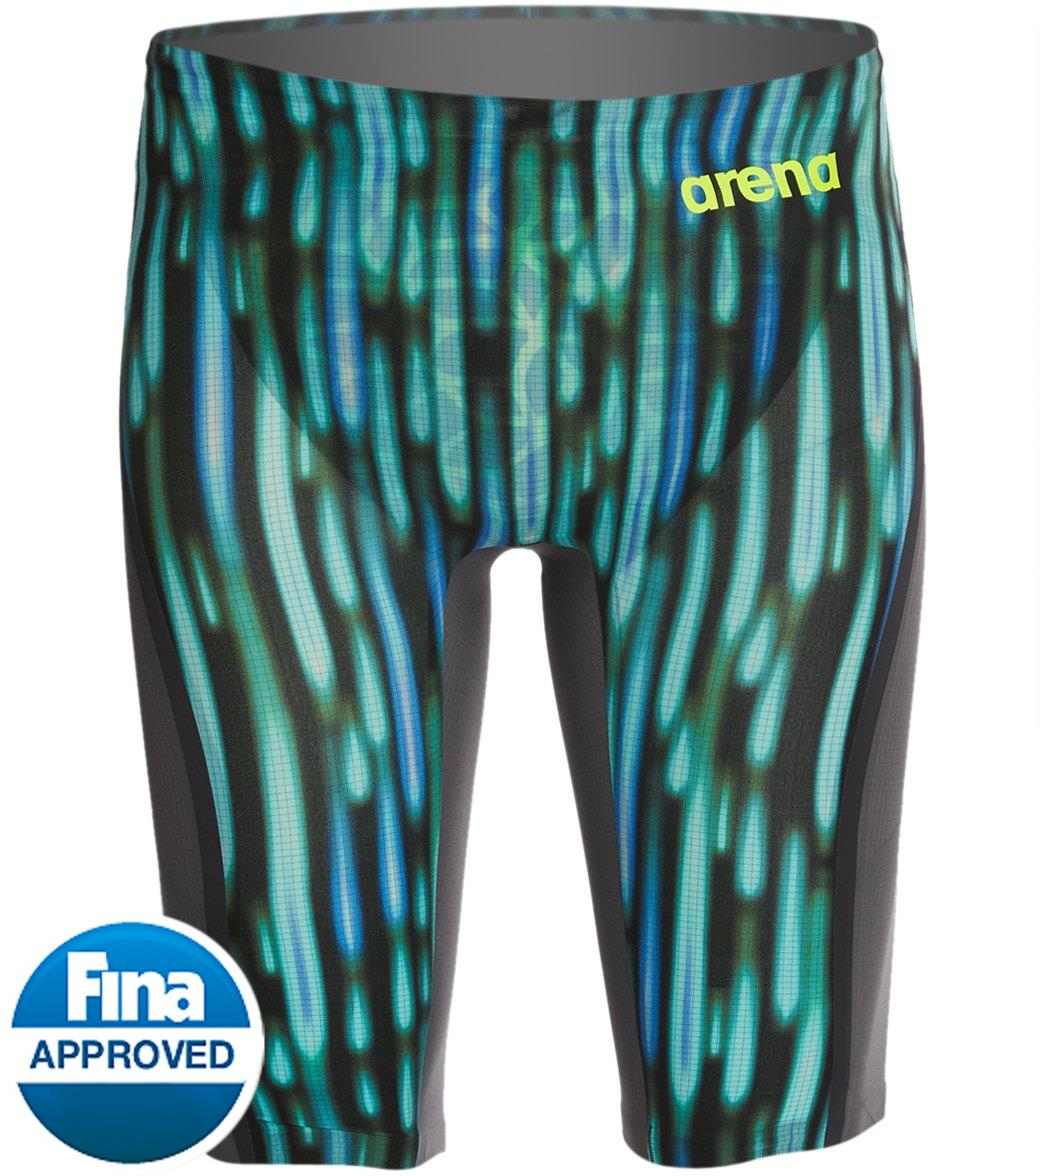 ac81fdff475ac Arena Men's Powerskin Carbon Ultra Limited Edition Jammer Tech Suit Swimsuit